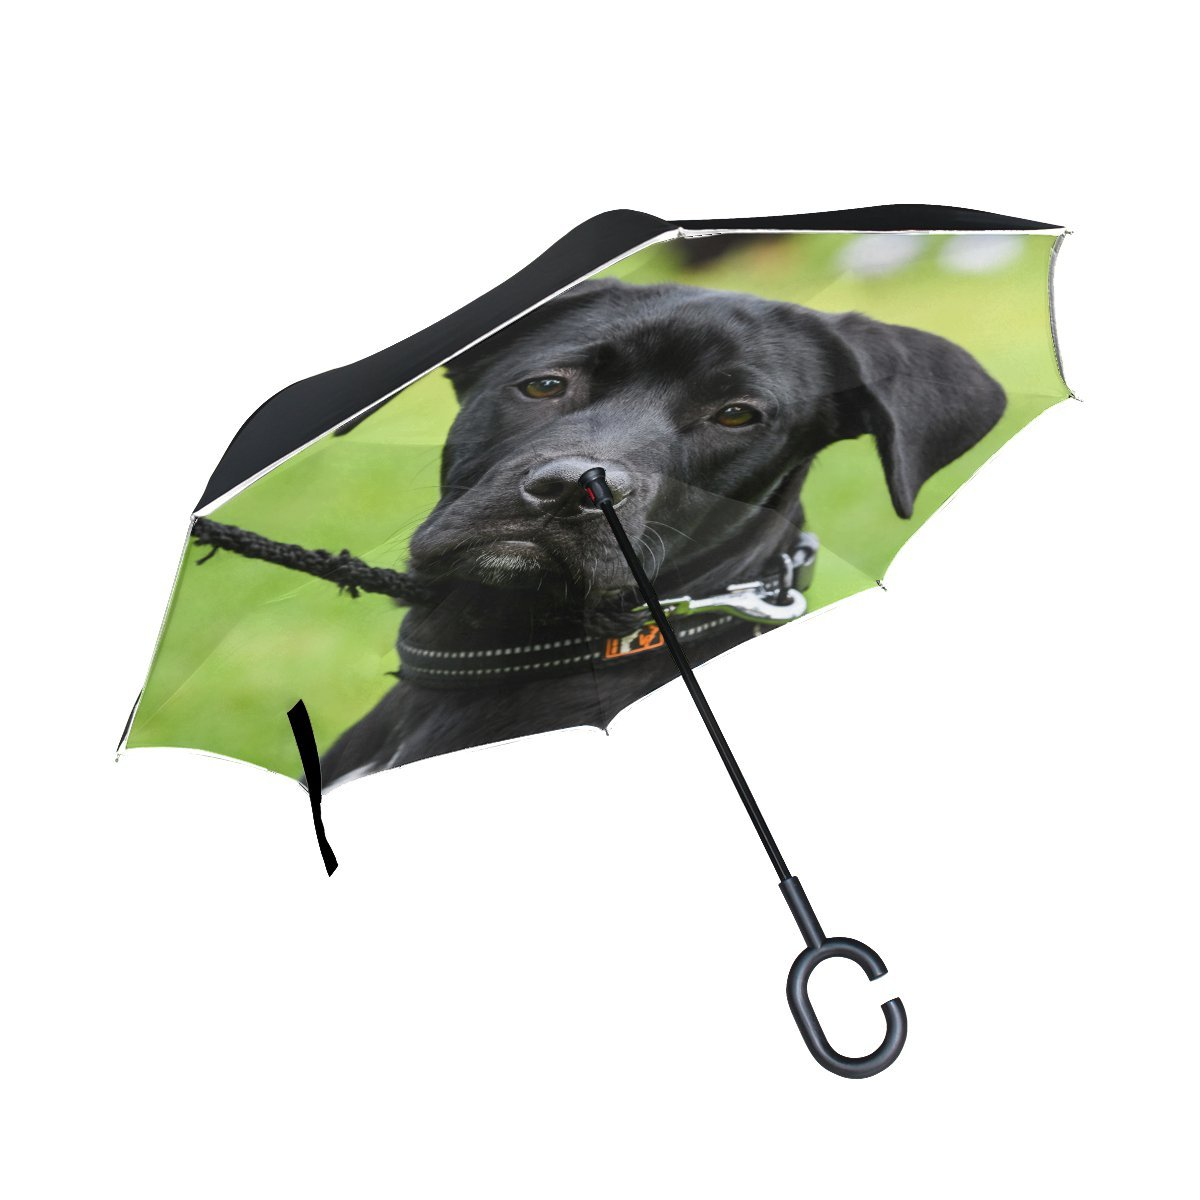 JOCHUAN Animal Dog Affenpinscher Black Pet Animated Walking Blackbeauty Inverted Umbrella Large Double Layer Outdoor Rain Sun Car Reversible Umbrella